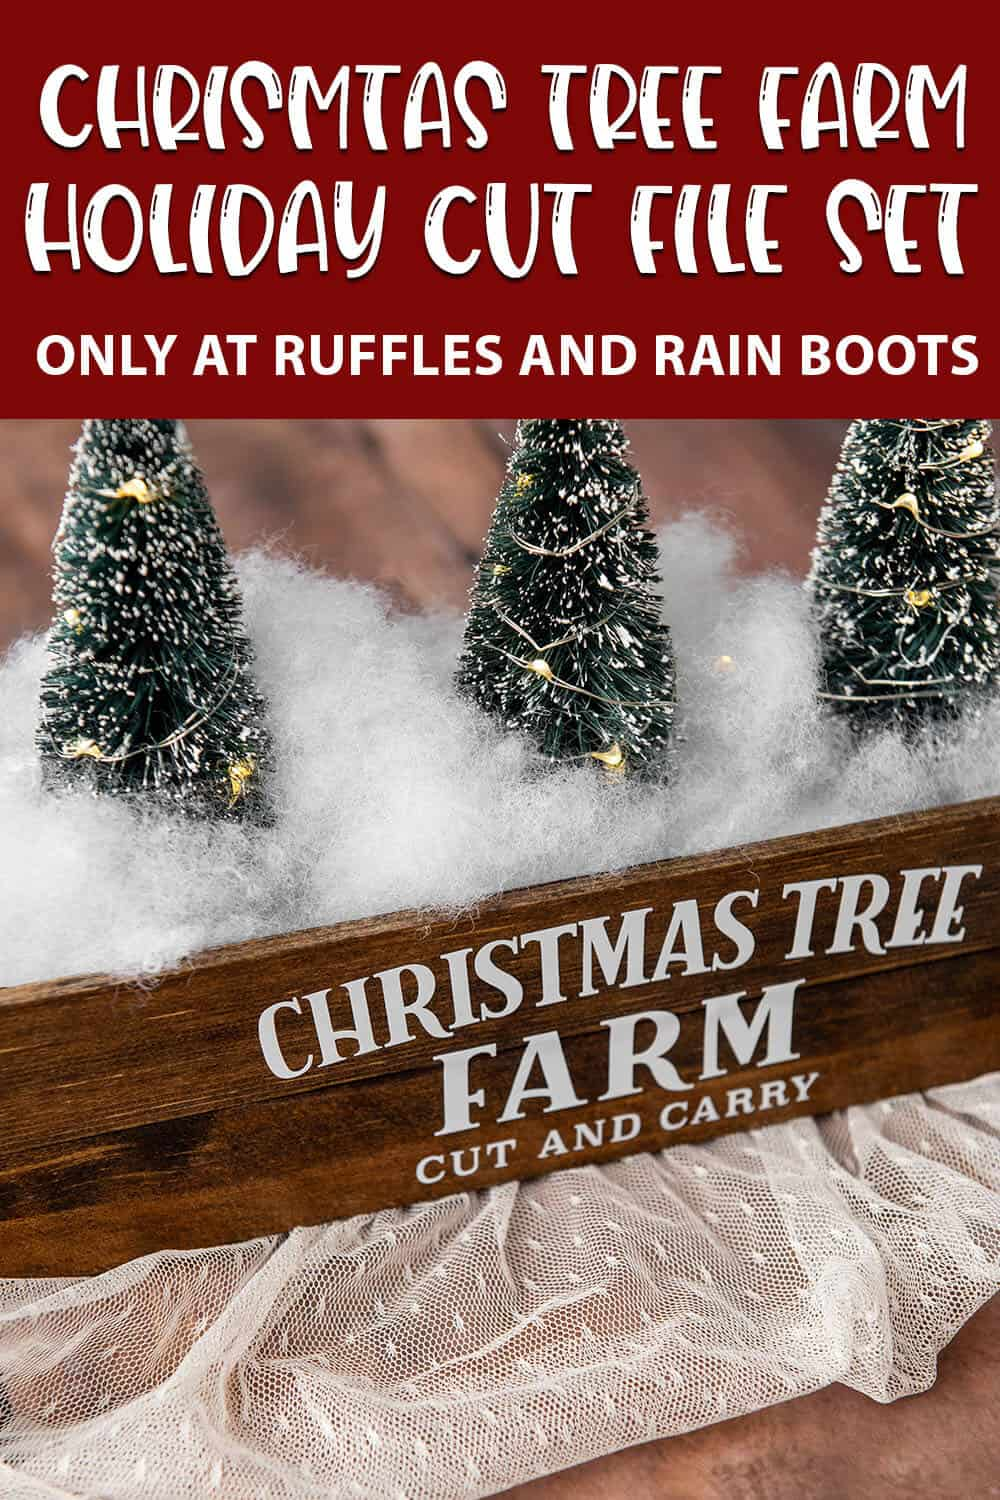 Christmas Tree Farm Centerpiece Cut File Set for cricut or silhouette with text which reads christmas tree farm holiday cut file set